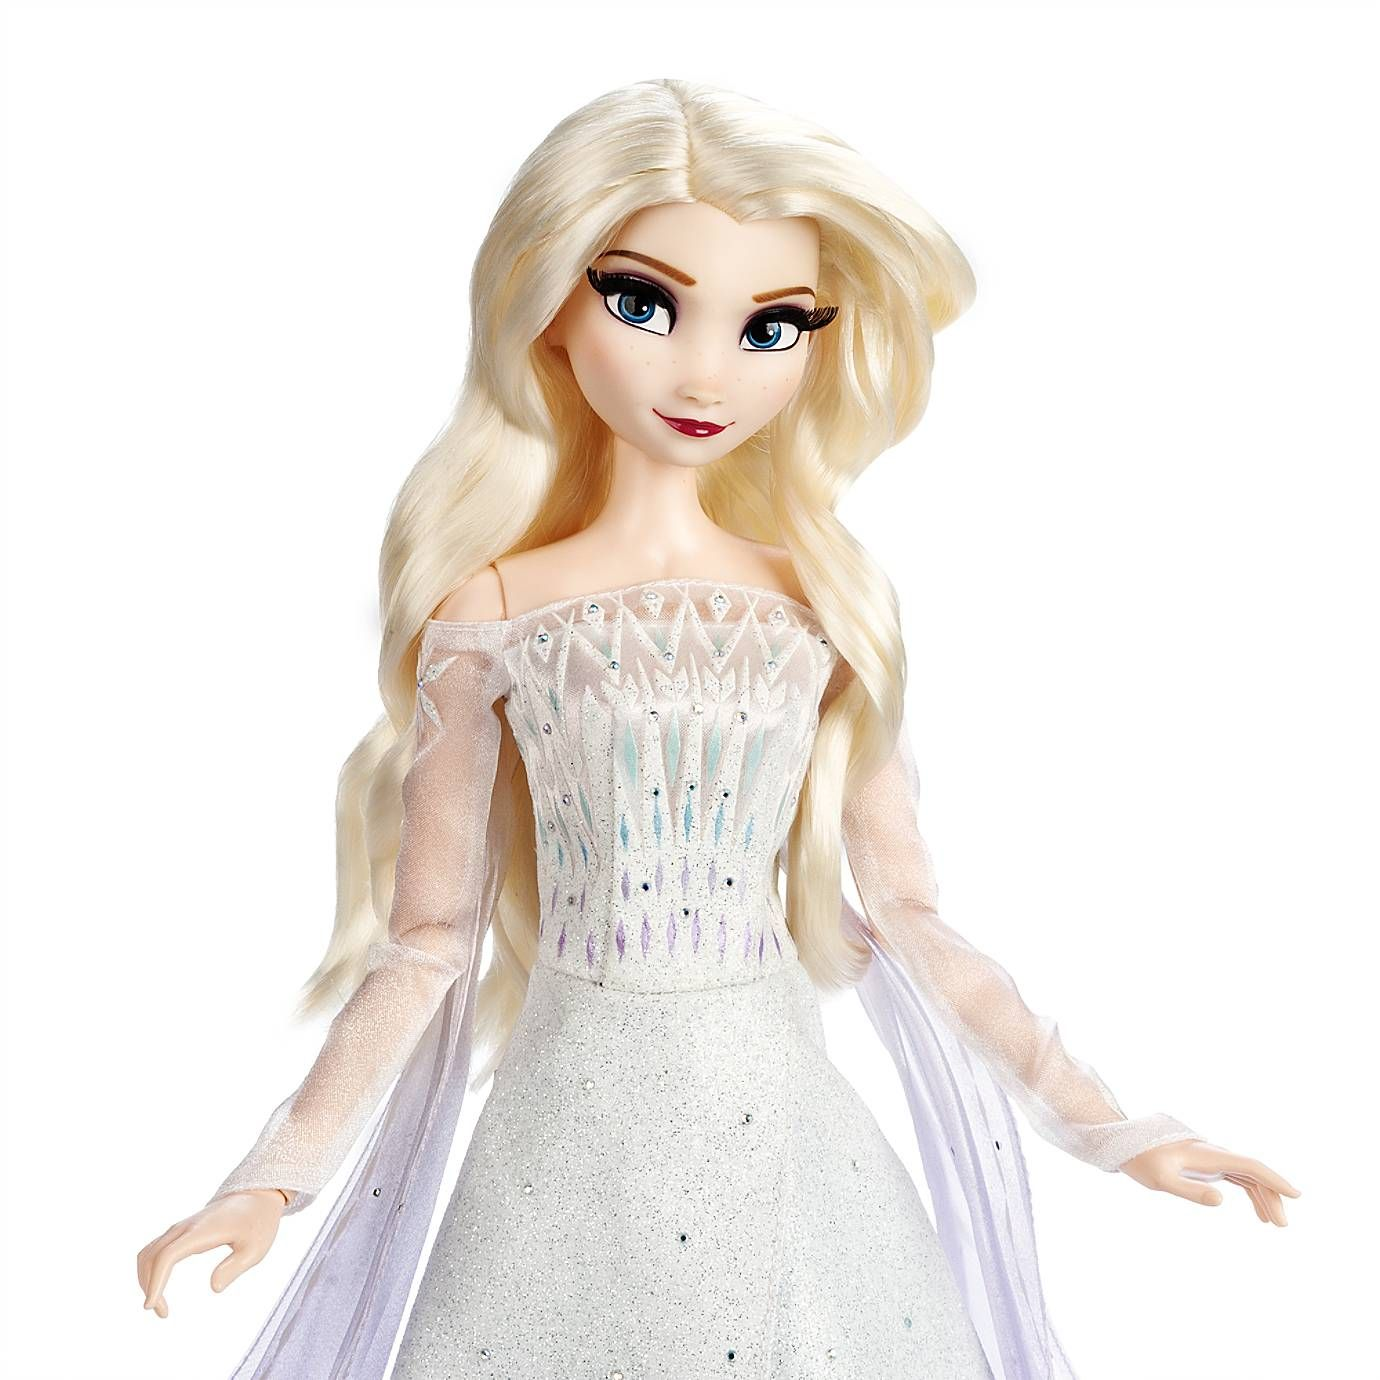 Elsa The Snow Queen Limited Edition Doll Frozen 2 17 Shopdisney In 2020 Snow Queen Dress Snow Queen Queen Dress